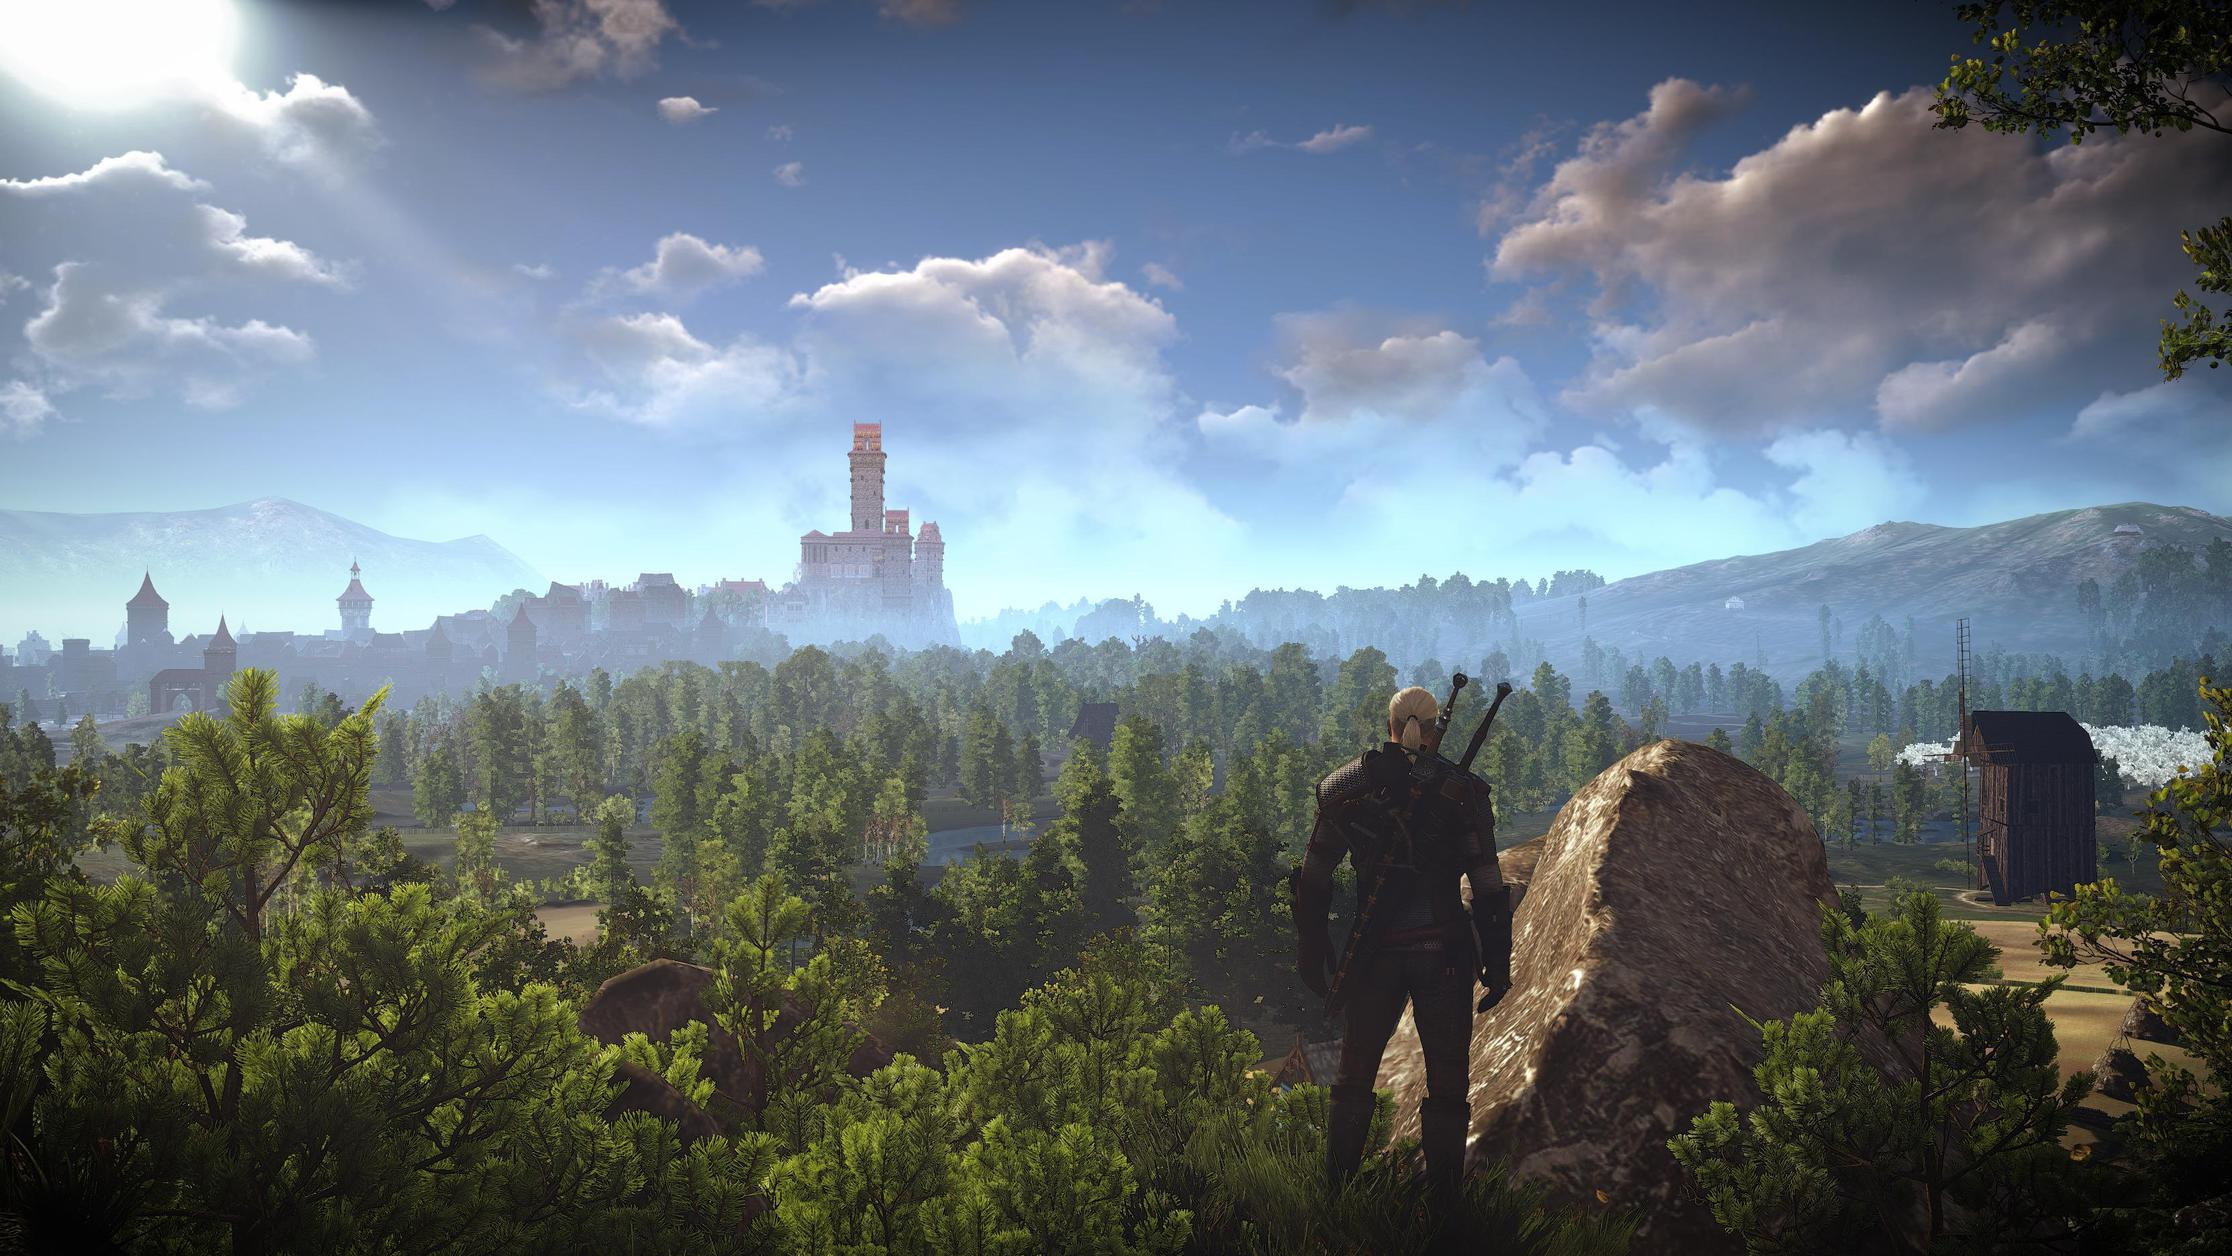 UPDATED] The Witcher 3 1 12 Patch Now Available On PC